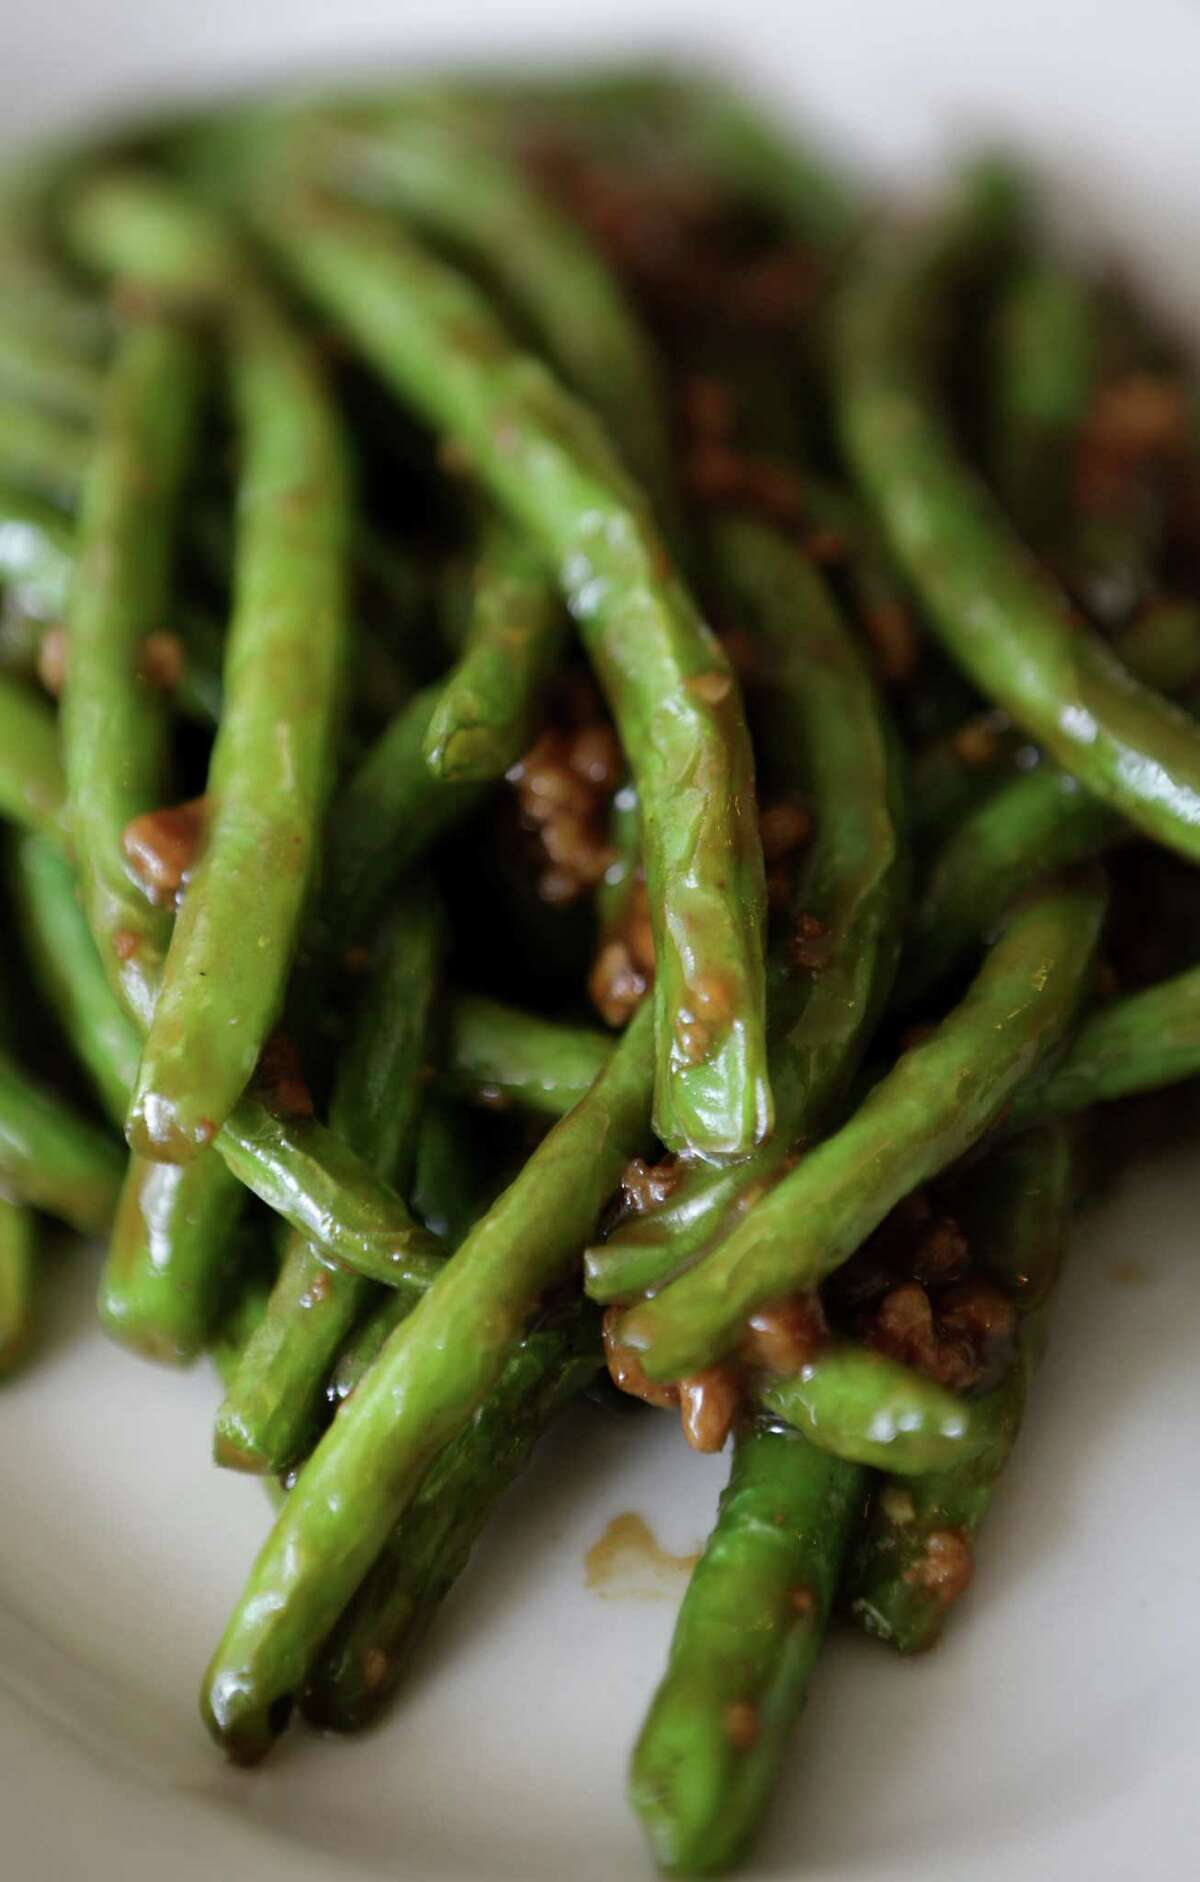 Green beans with pork is among the dishes on the expansive Kim Wah menu.